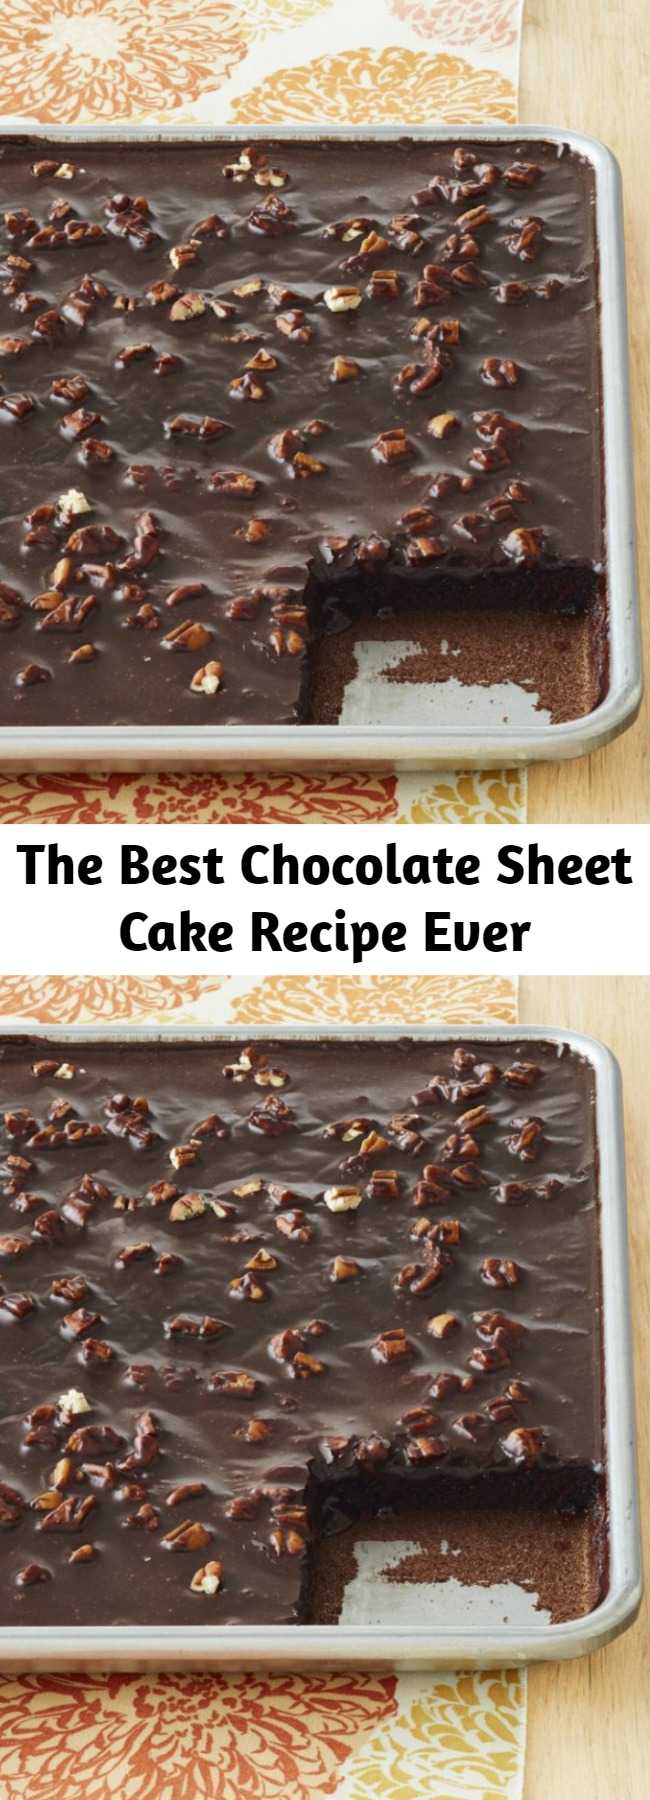 The Best Chocolate Sheet Cake Recipe Ever - It's moist beyond imagination, chocolatey and rich like no tomorrow, and 100% of the time, causes moans and groans from anyone who takes a bite.